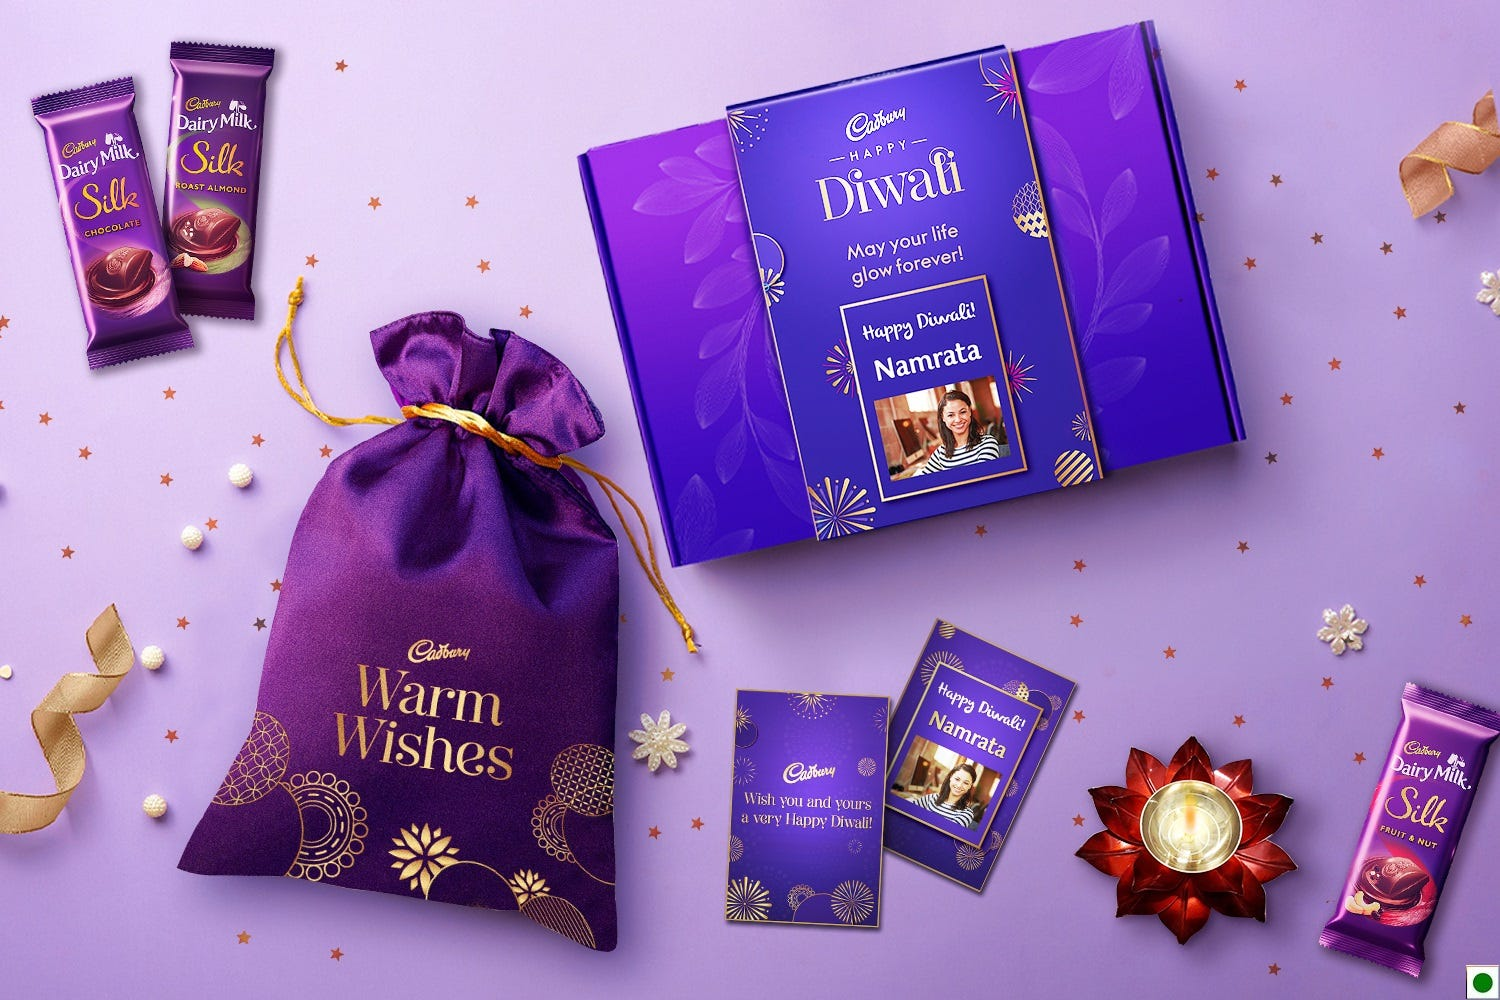 Thoughts That Come to Our Mind during Diwali Gift Shopping